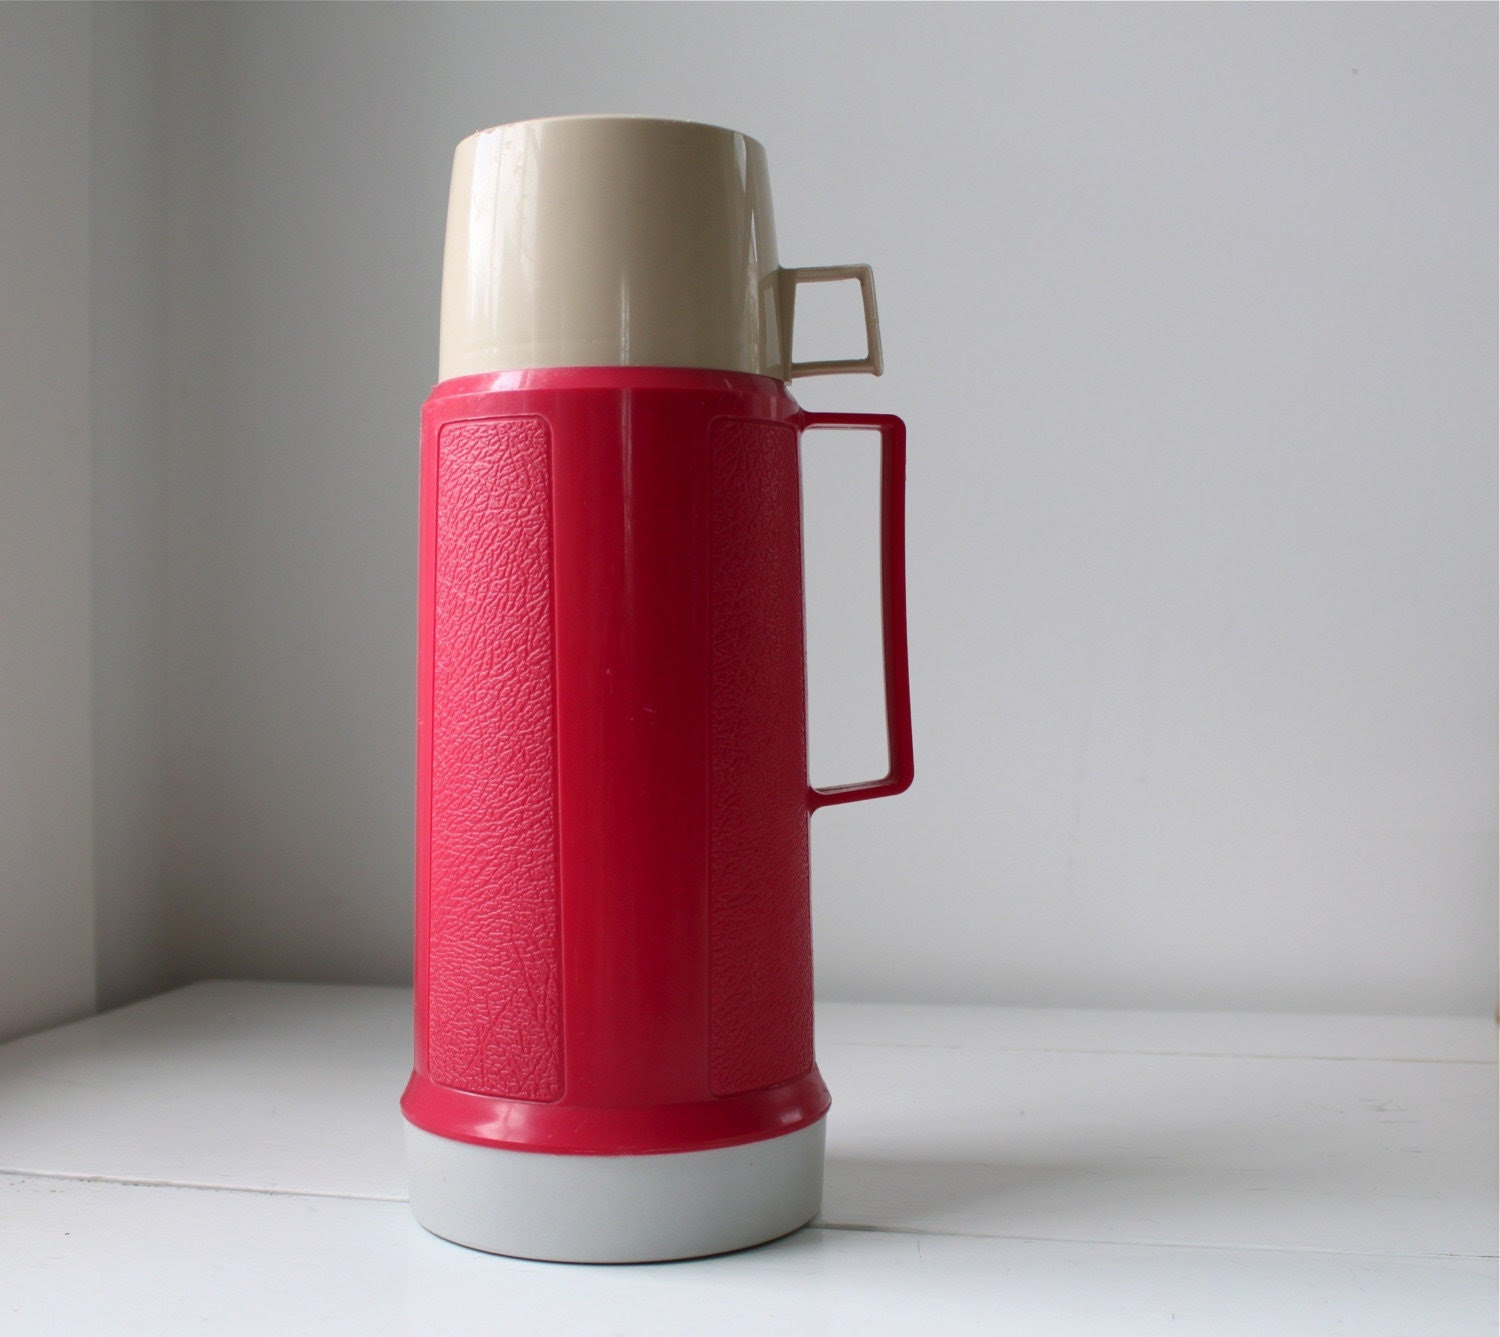 vintage 1970s PINK PICNIC thermos. Eco friendly and retro alfresco. Insulated drink carrier. Hot or cold.